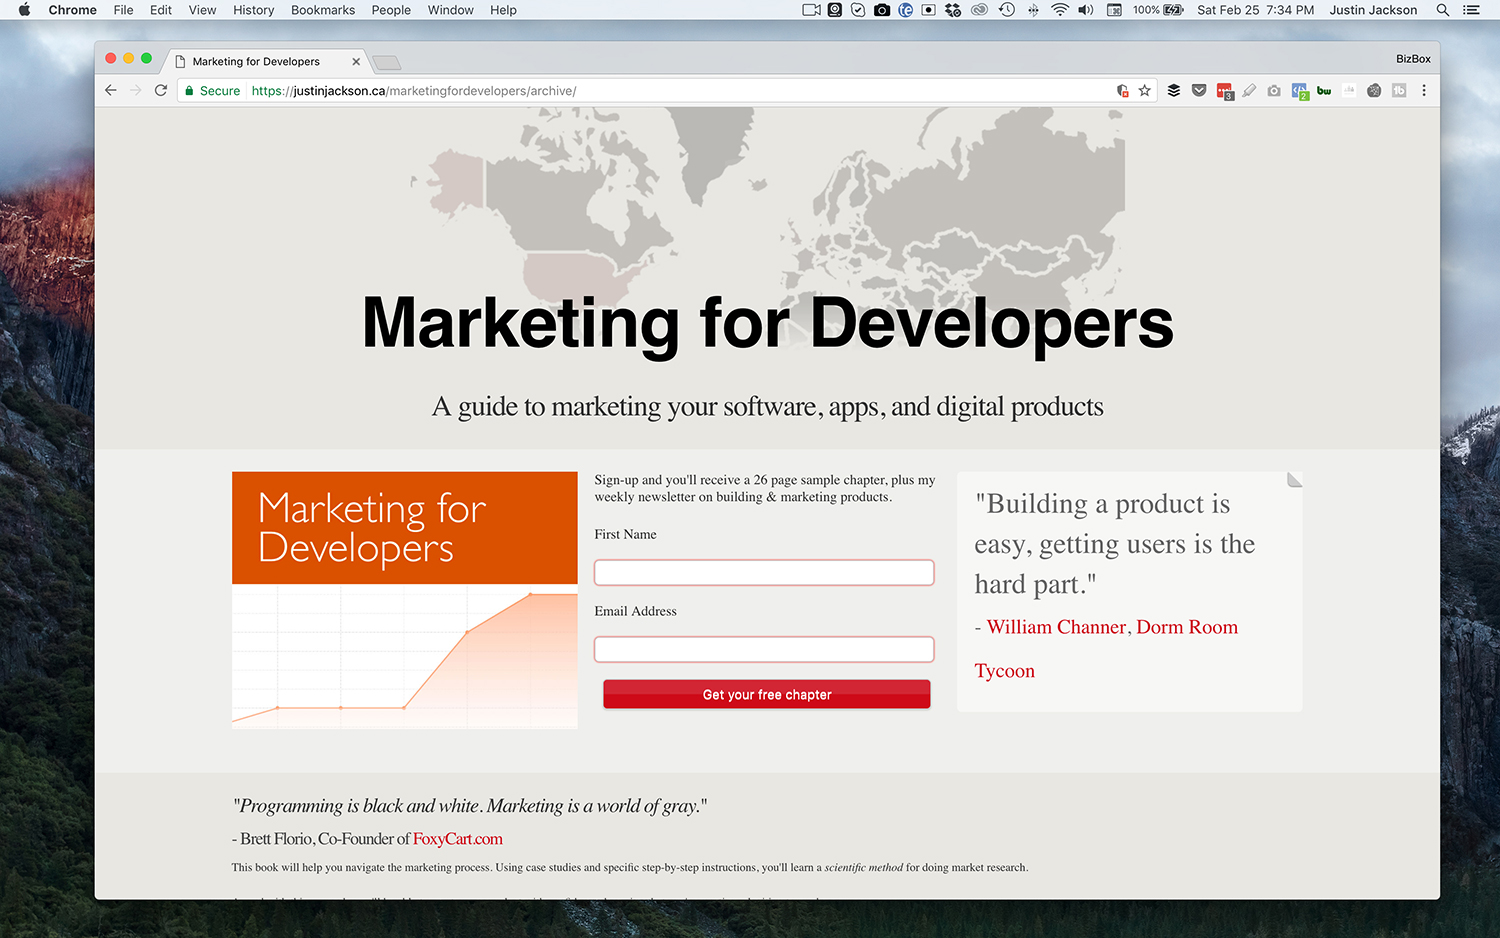 Marketing for Developers Landing Page